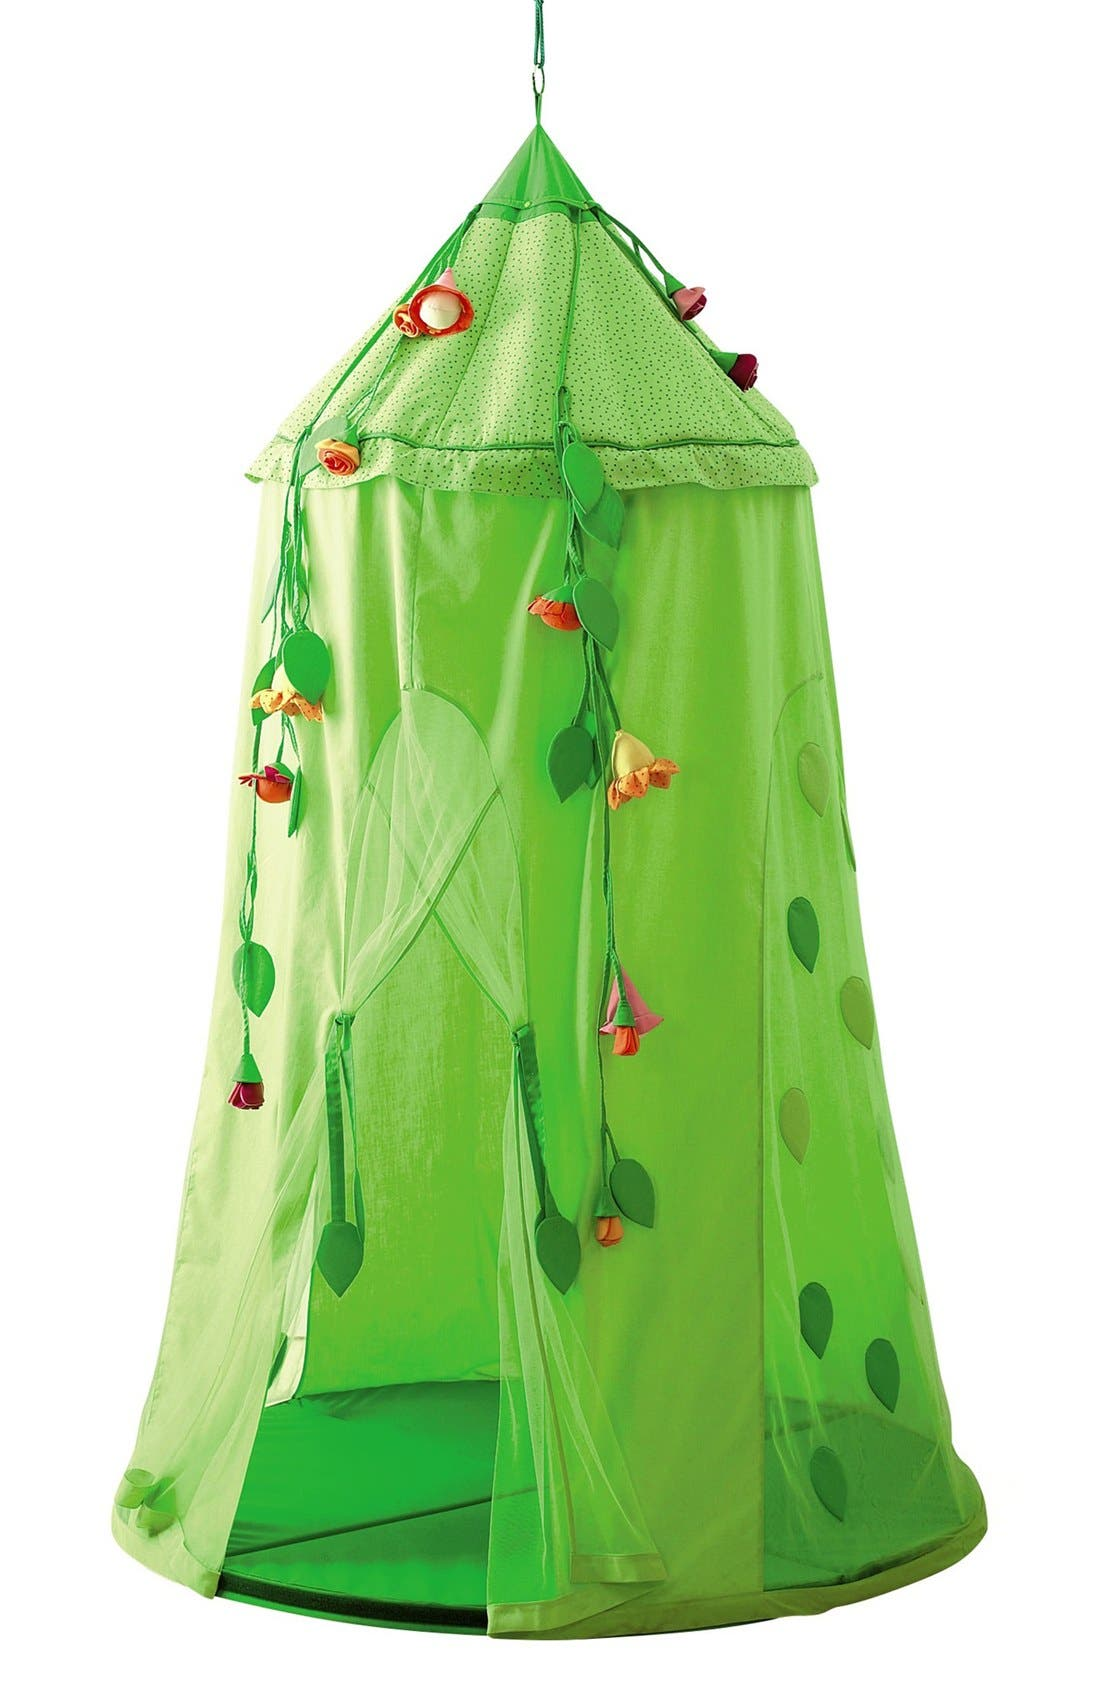 'Blossom Sky' Hanging Play Tent,                         Main,                         color, 300